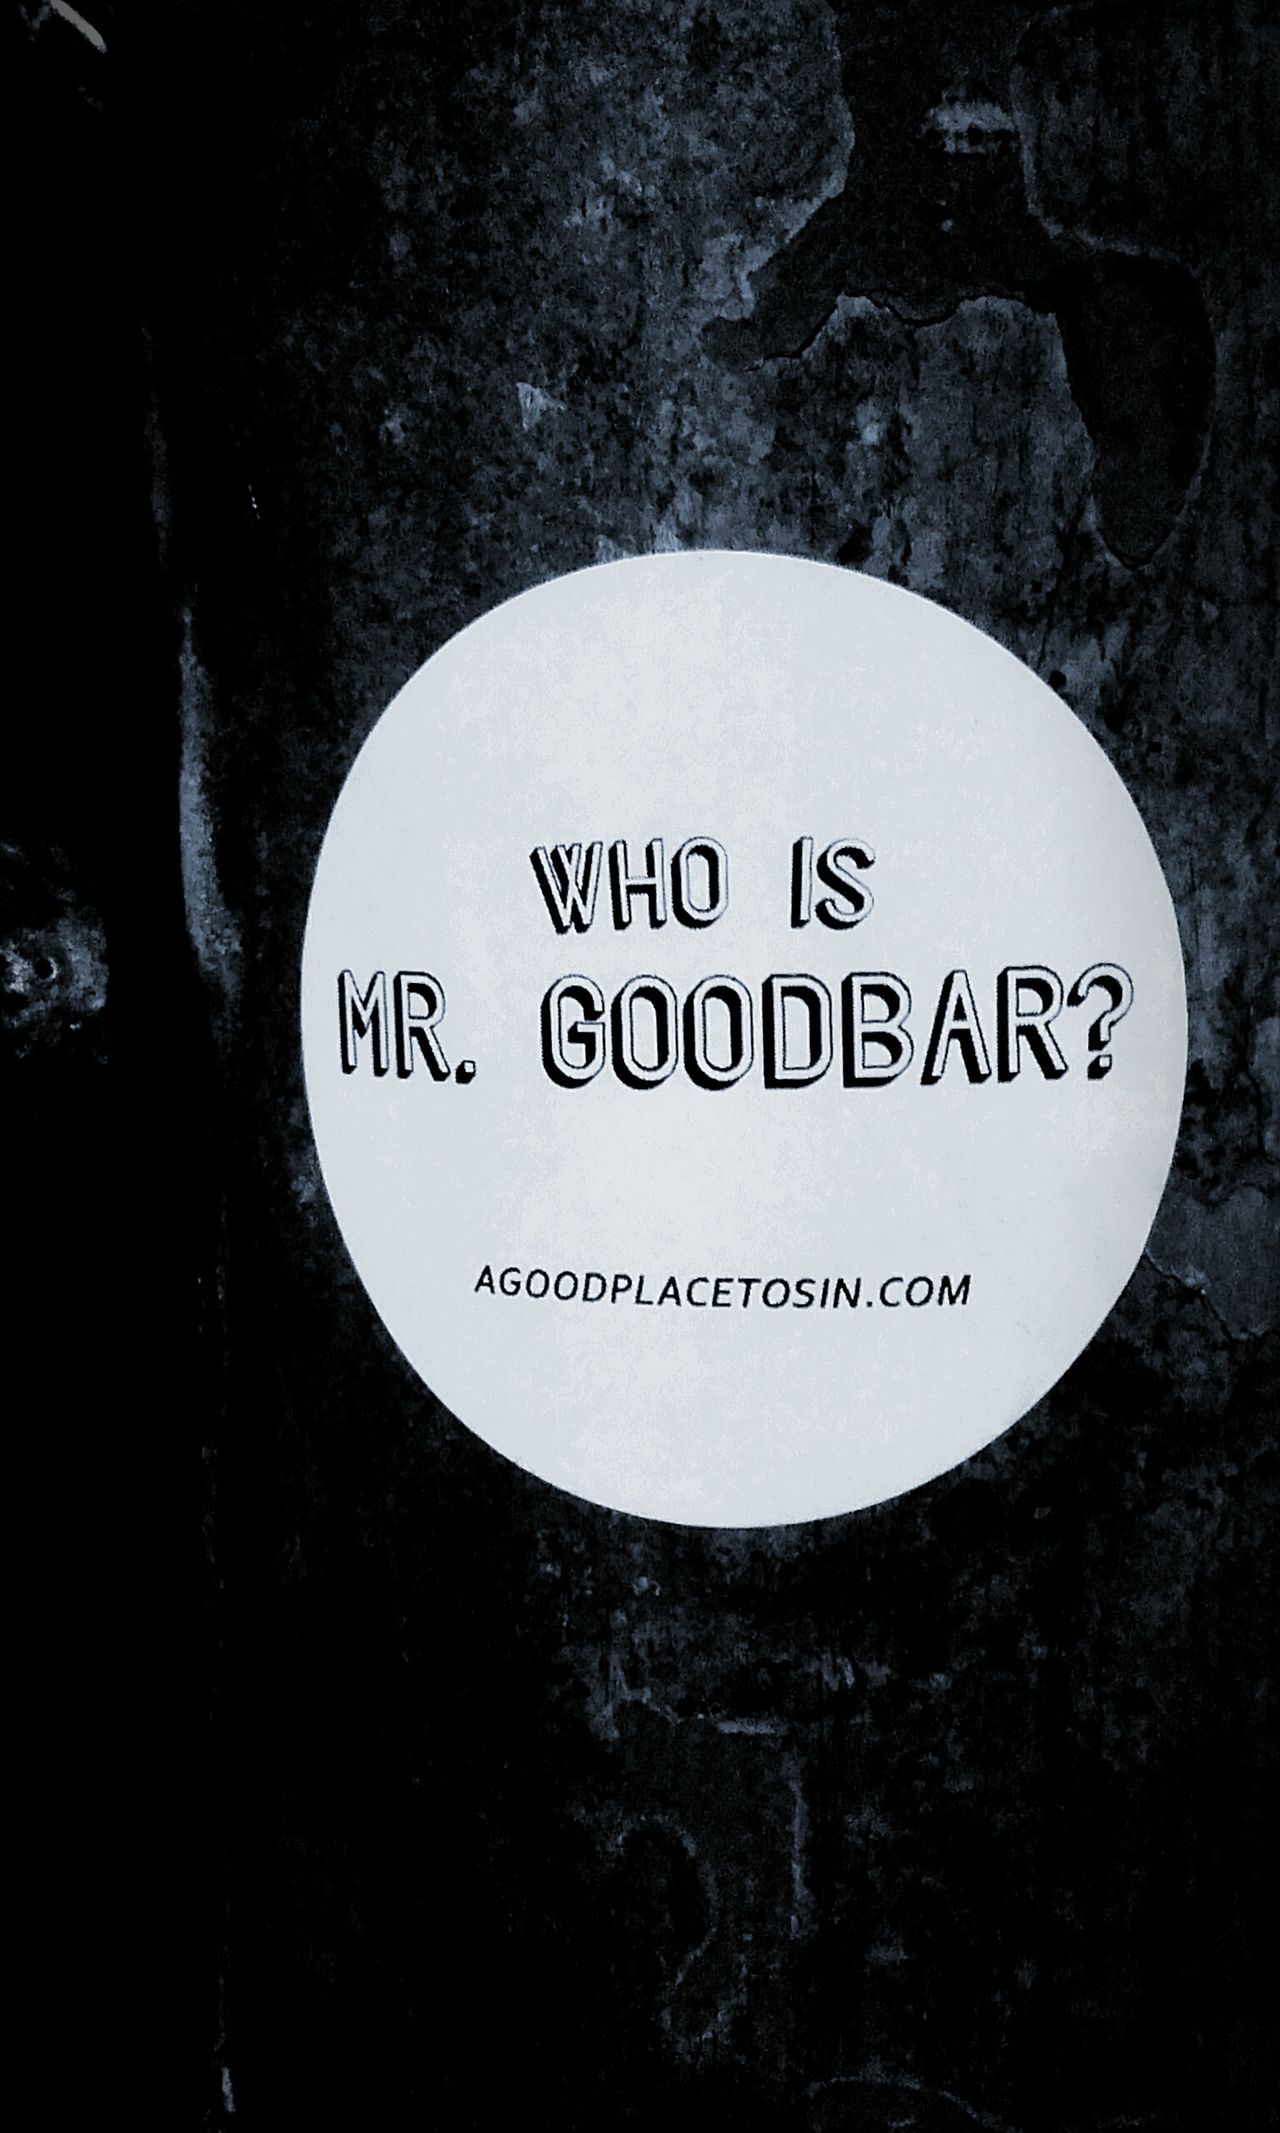 Who Is Mister Goodbar? Sticker Signs Stickers And Stickers Wall-stickers Stickerseverywhere Stickerporn Stickers Sticker Wall Mr Goodbar Agoodplacetosin.com GOODBAR Stickers Stickers Stickers Sign Sticker It Stickerama Wall Sticker Stickering Stickerfest Stickers On A Pole Sticker Slapper Stickerslap Stickered Stickers On Poles Stickershit